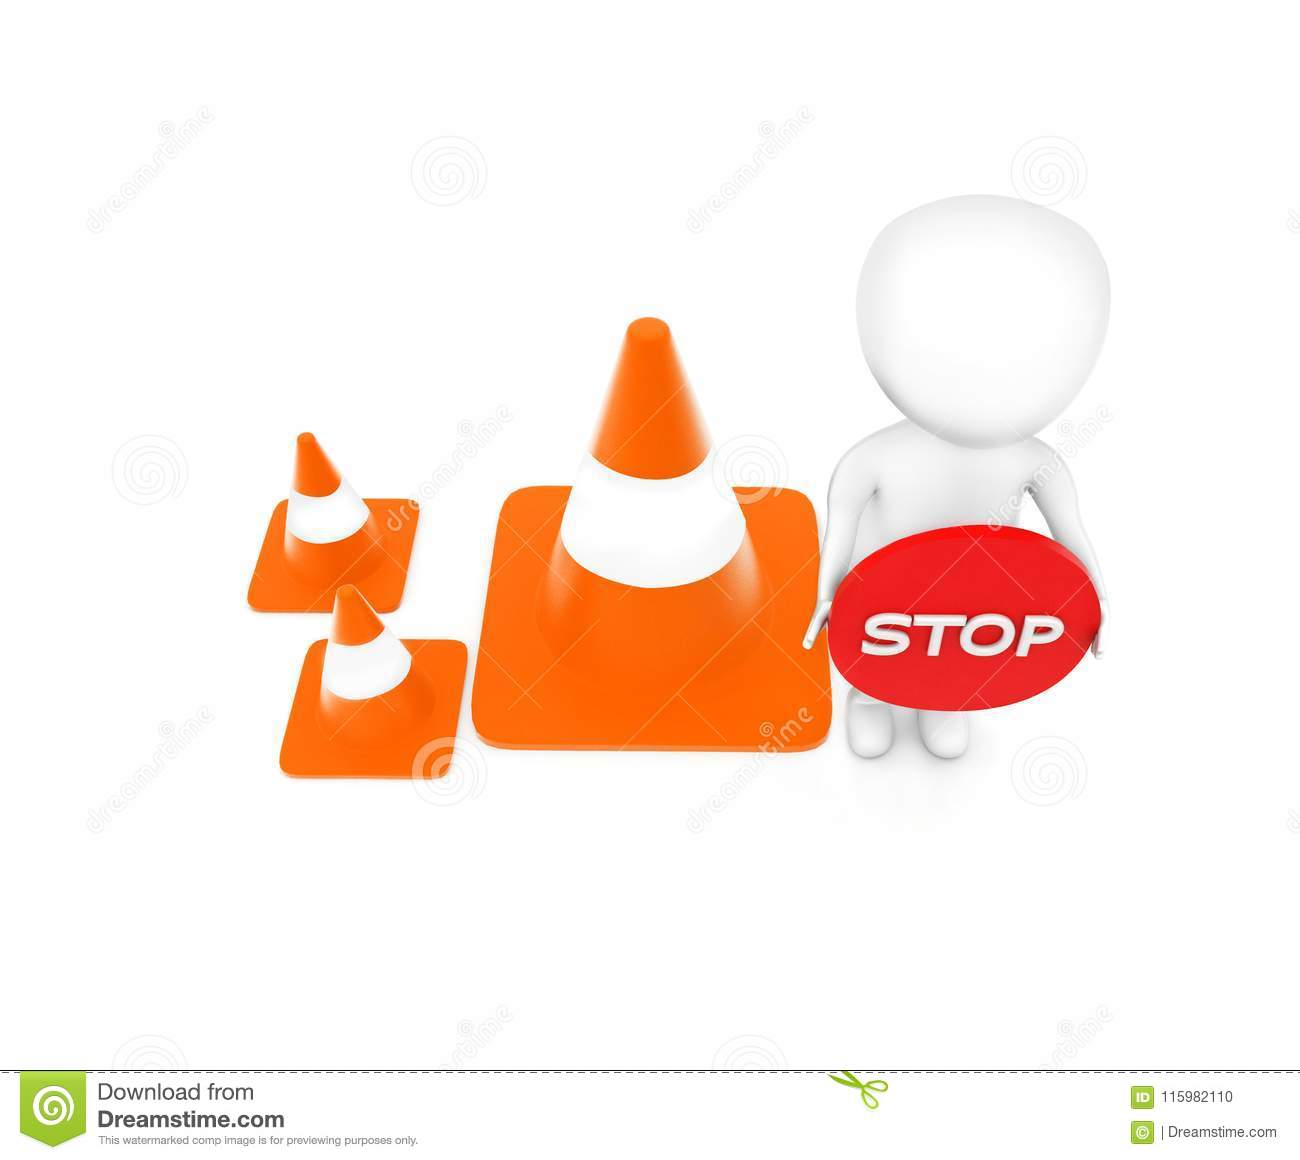 3d man holding a stop sign board in hand while standing near to a series of traffic cones concept